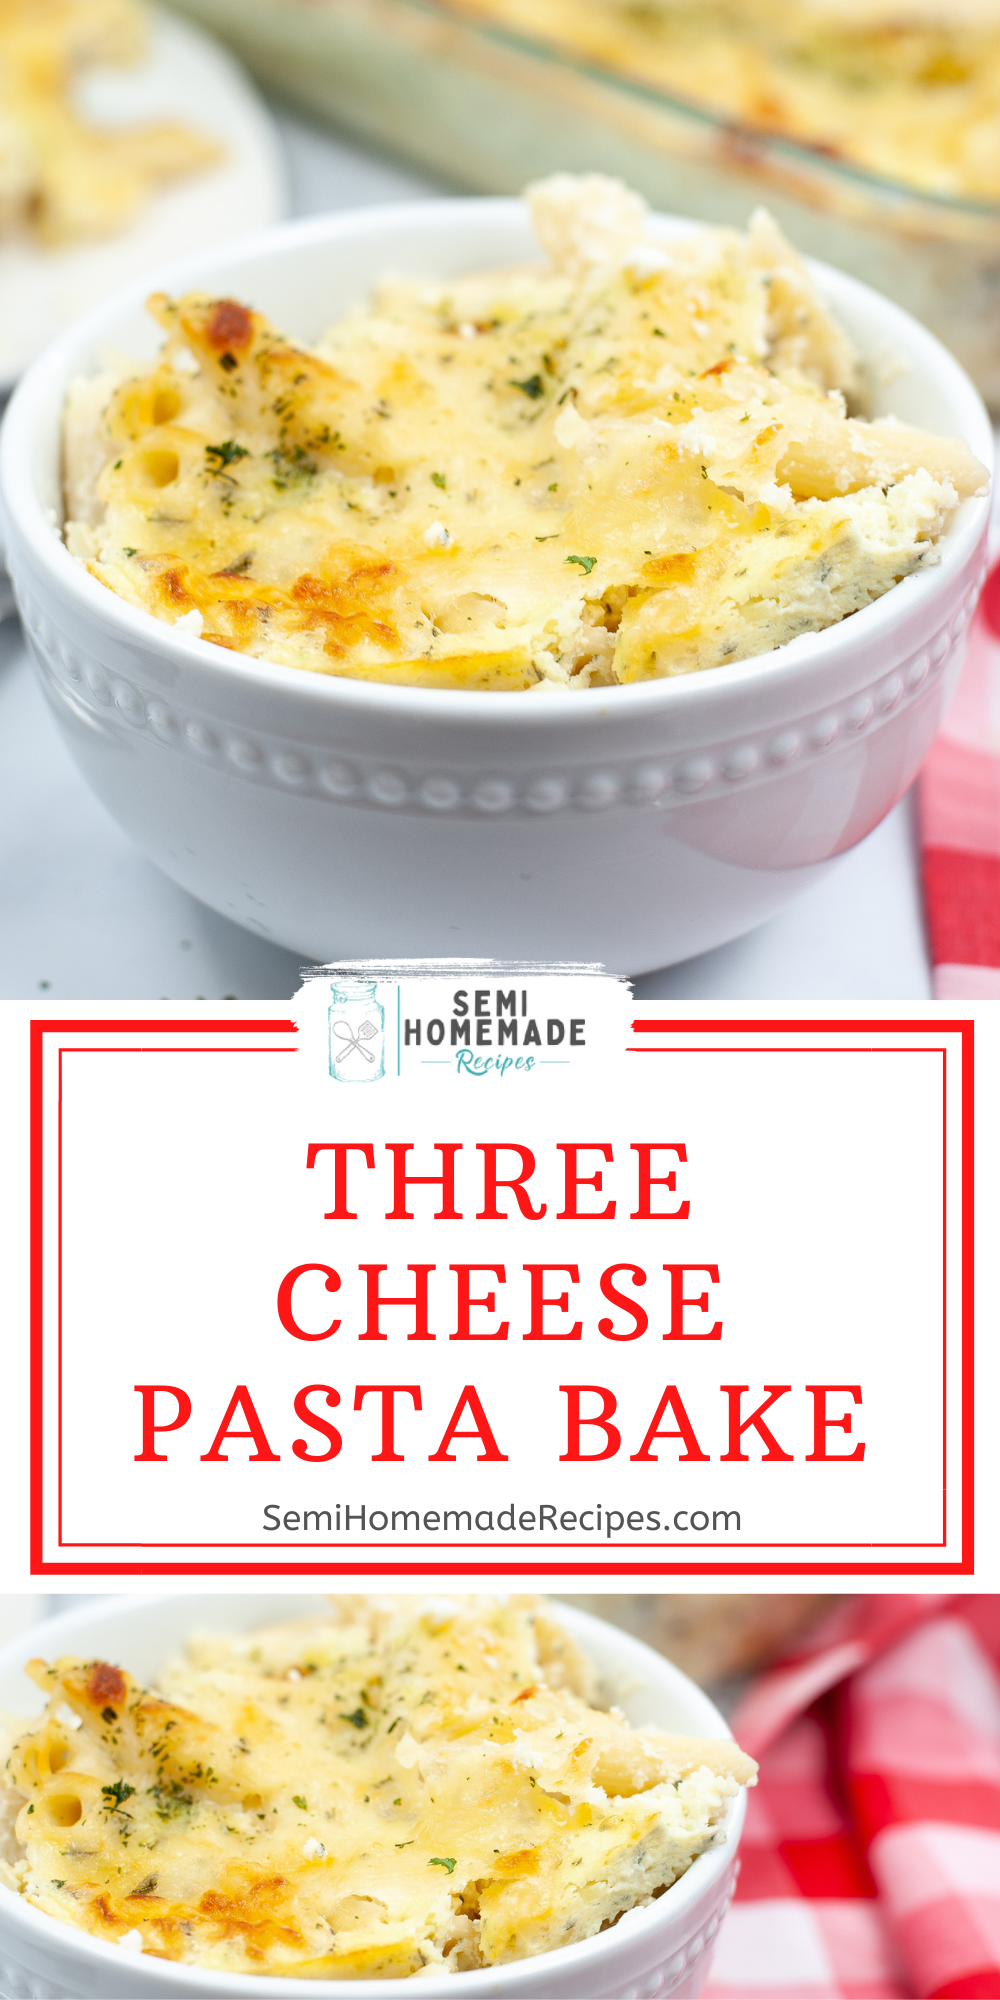 Three Cheese Pasta Bake is make with Mozzarella cheese Parmesan cheese and cottage cheese! Mixed together with penne pasta and baked for about 30 minutes makes for a great dinner!!